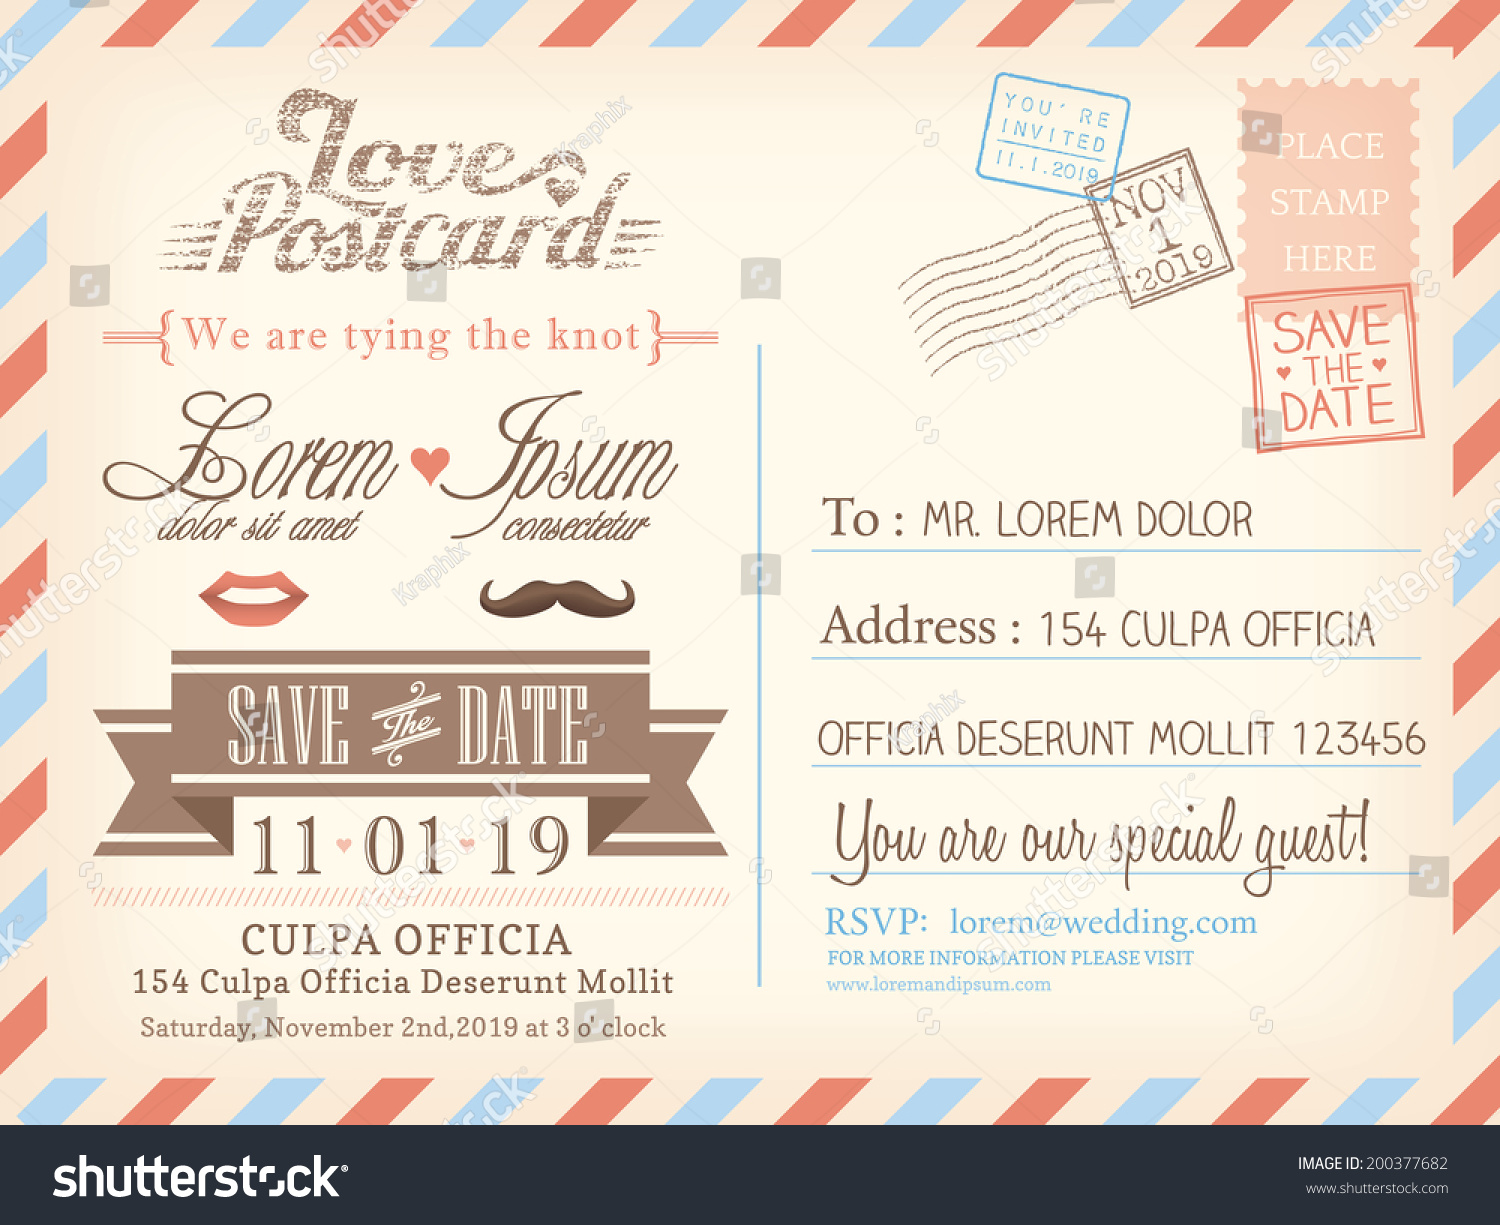 Airmail Wedding Invitations: Vintage Airmail Postcard Background Vector Template Stock